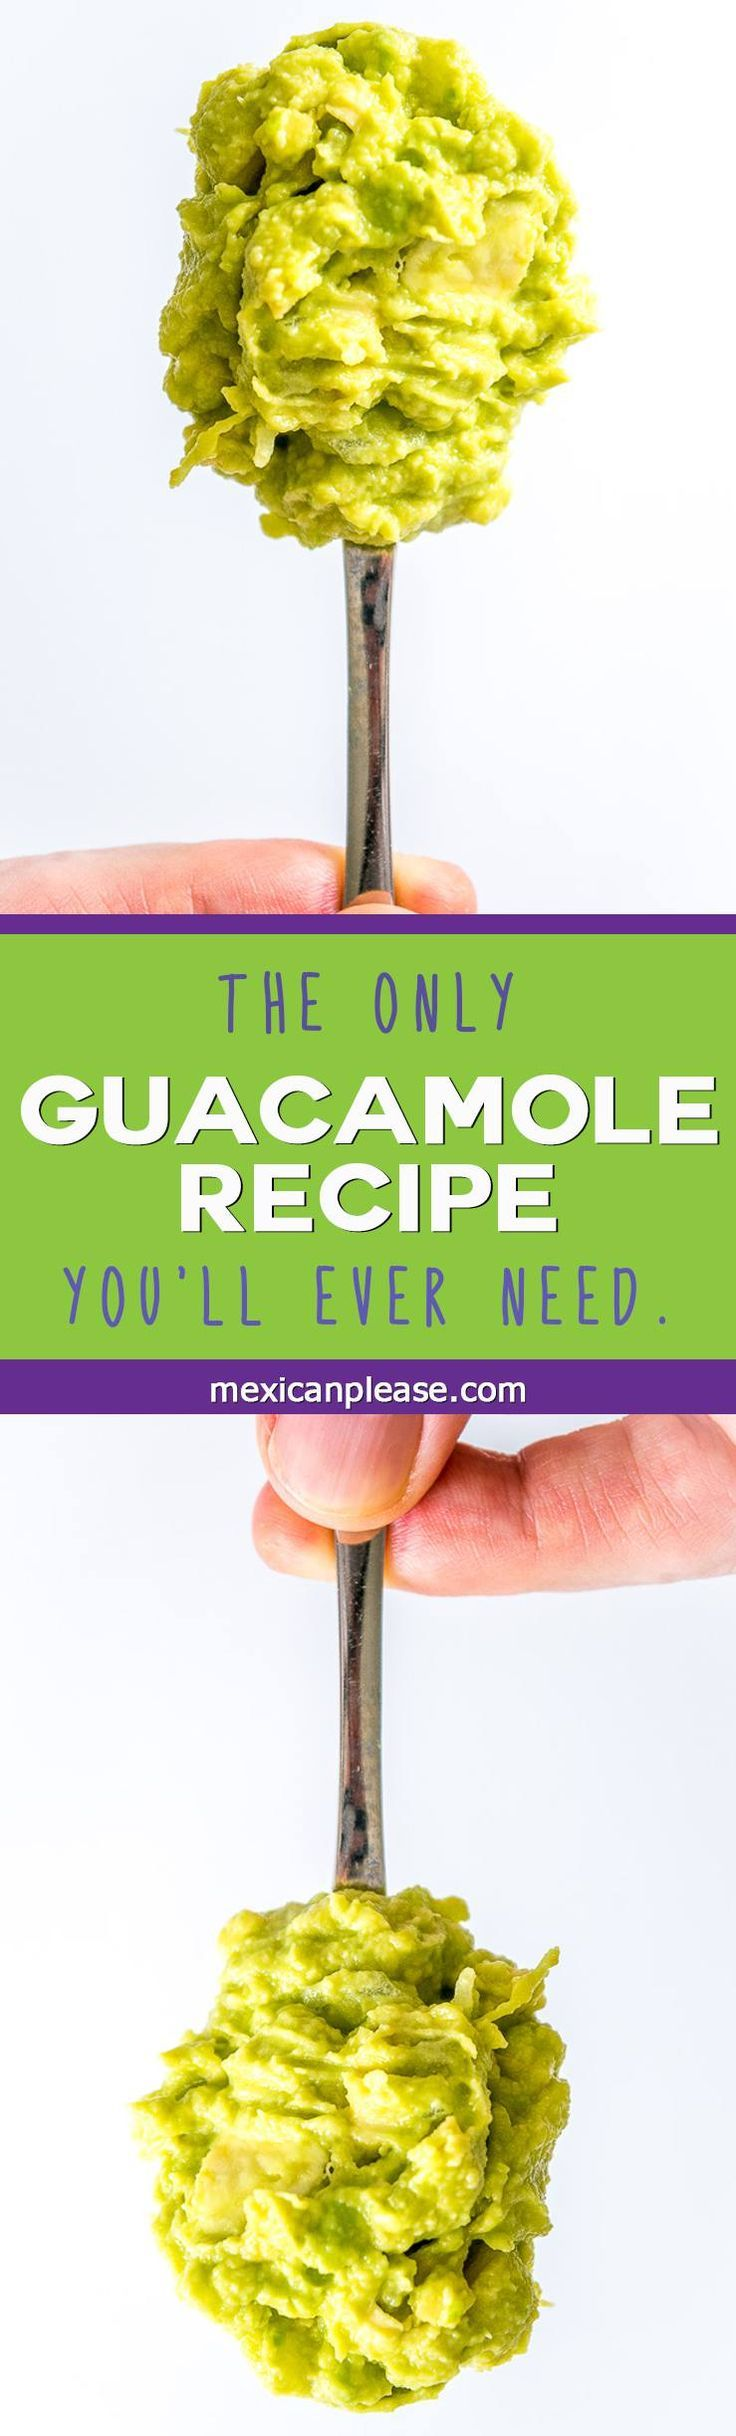 This recipe proves how good Guacamole can be when using onion, lime, salt and avocado in balanced proportions -- also includes an onion smooshing tip to enhance flavor http://mexicanplease.com